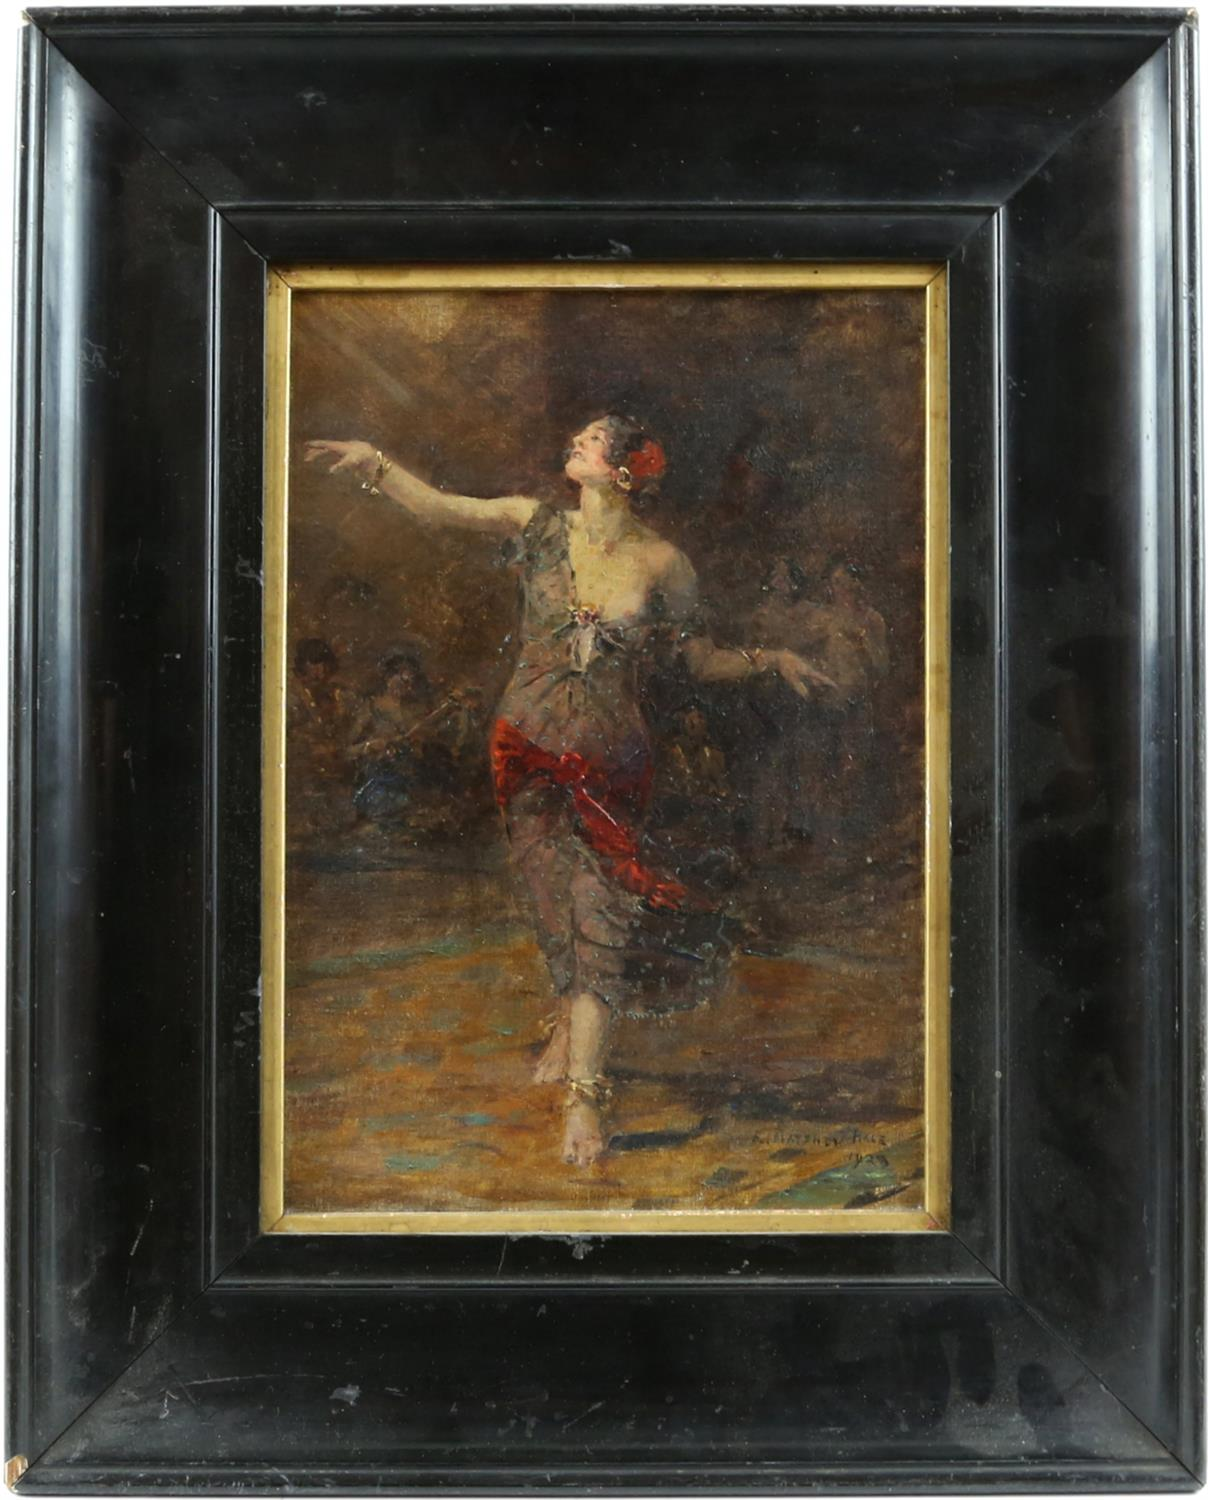 Edward Matthew Hale (British, 1852-1924). Portrait of a dancing woman with musicians beyond. - Image 2 of 3